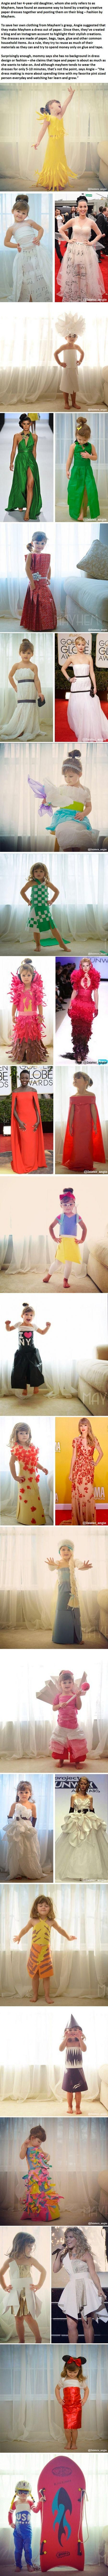 This is the most adorable thing ever!  You could start them small learning how to redesign fashions to be modest.  Great little girl activity!: Funny Fashion, Little Girls, Idea, Celebrity Dresses, Mayhem Paper Dresses, Famous Celebrity, Awesome Mom, Kid